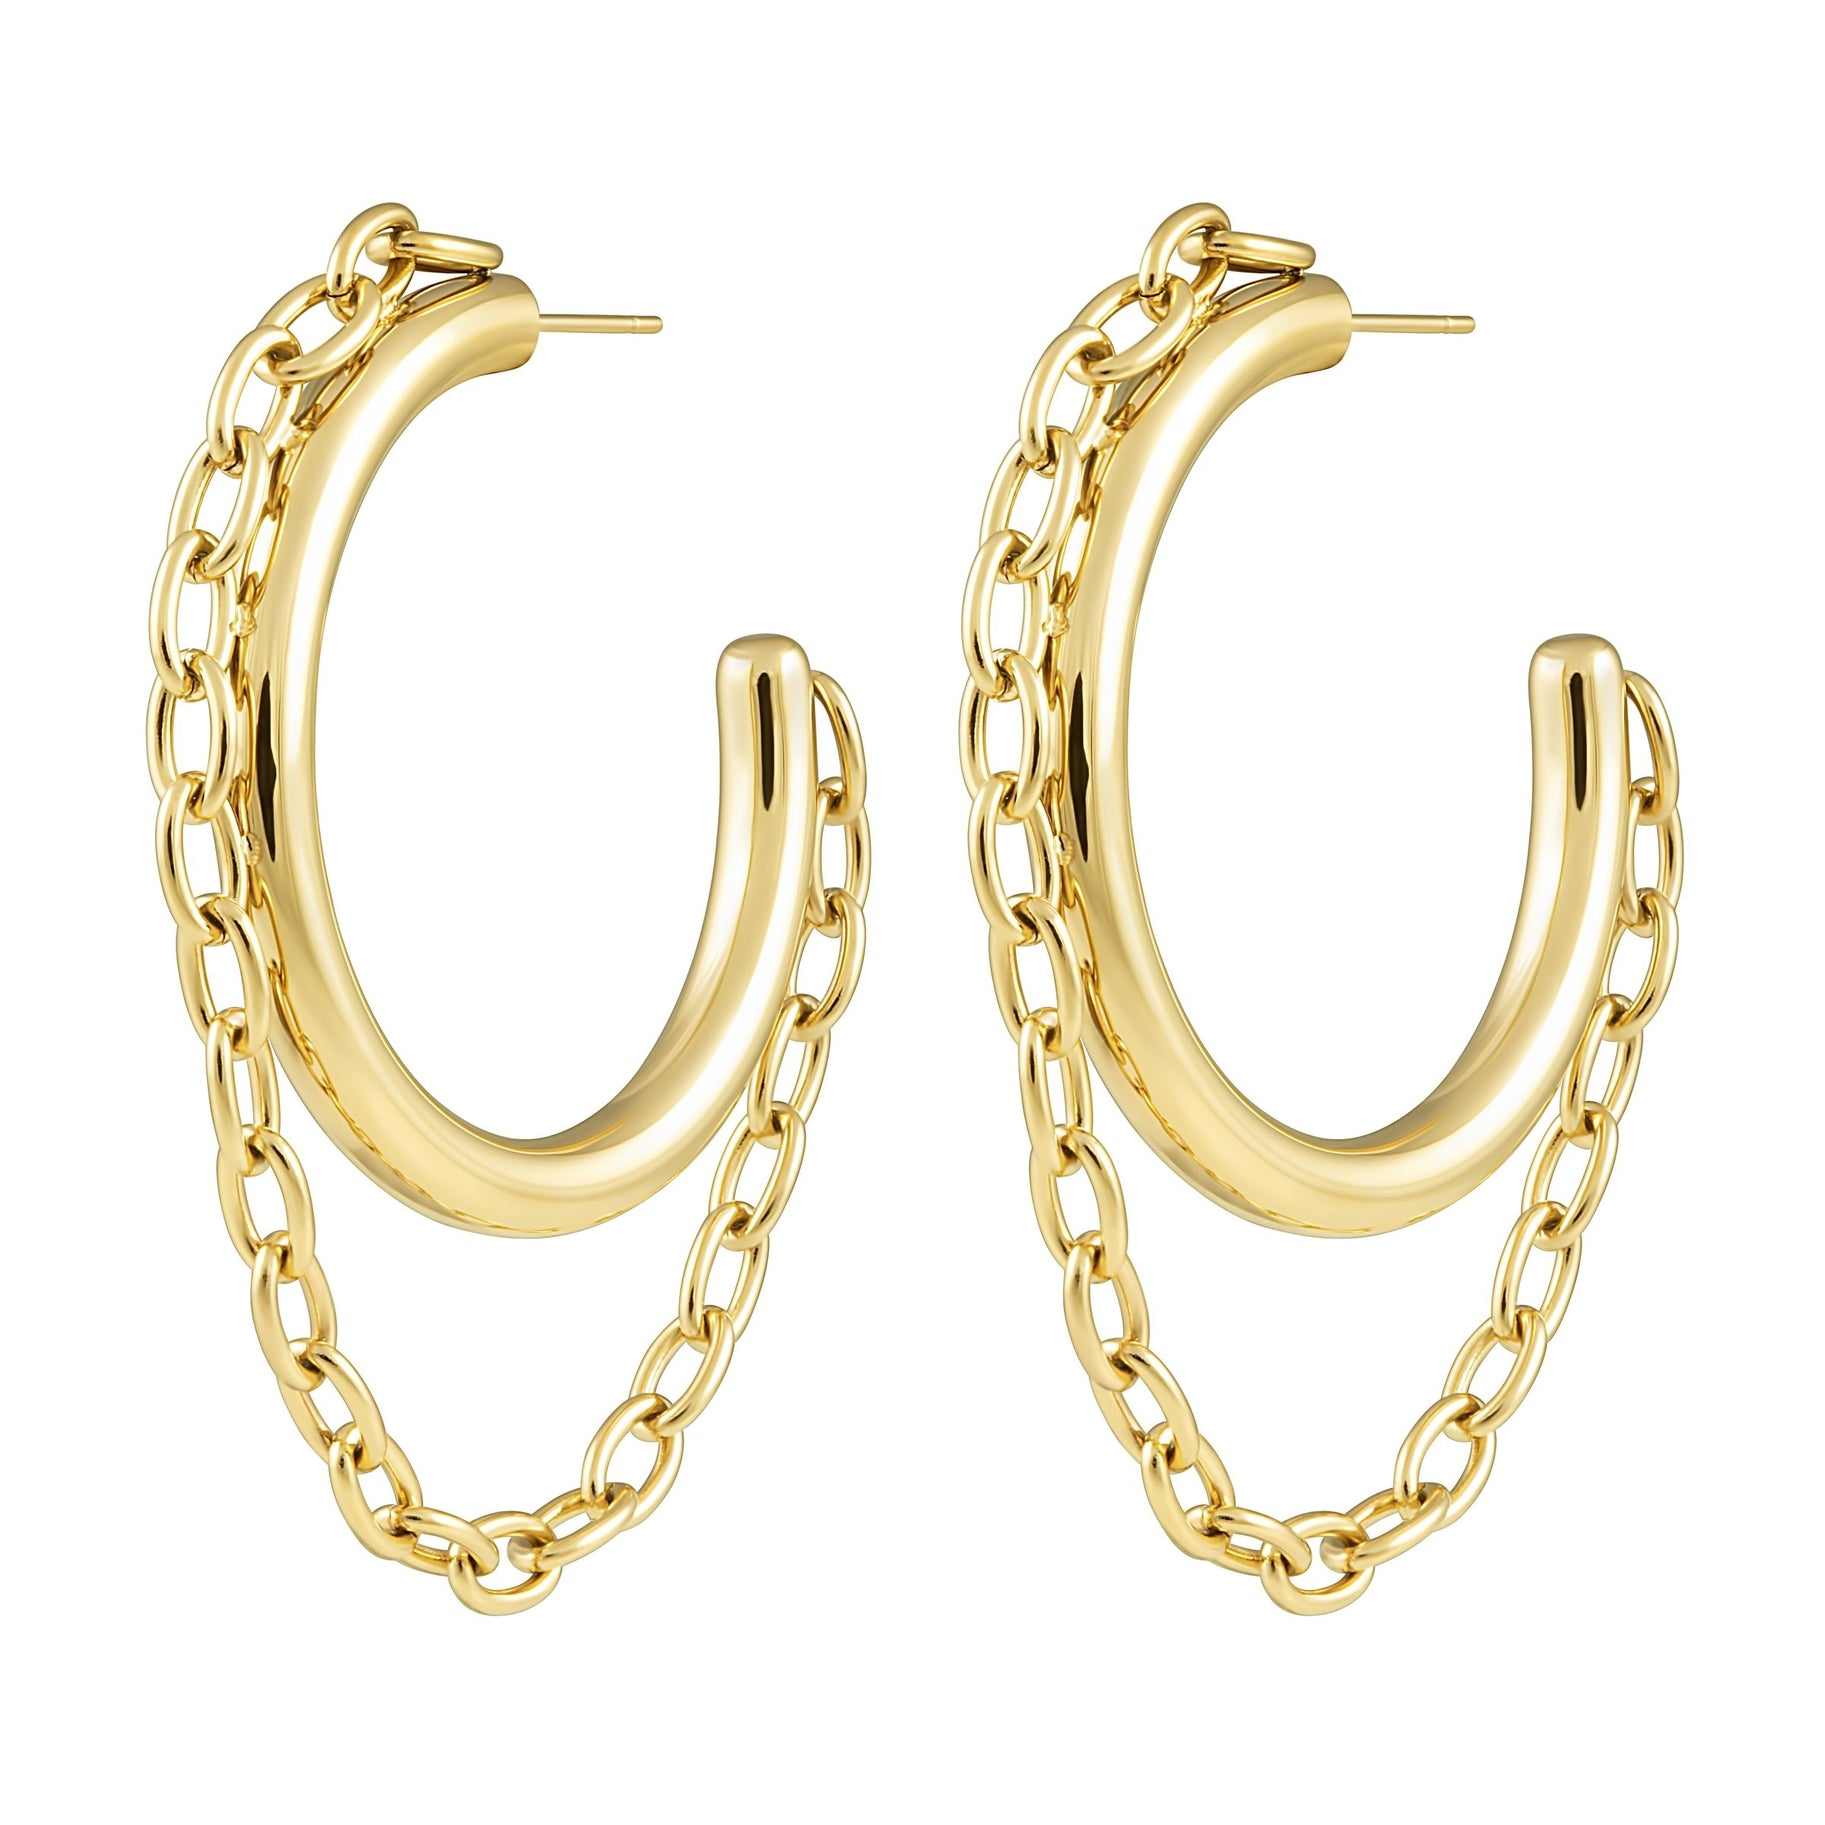 Luxury Hoop Earrings 18k Gold Plated